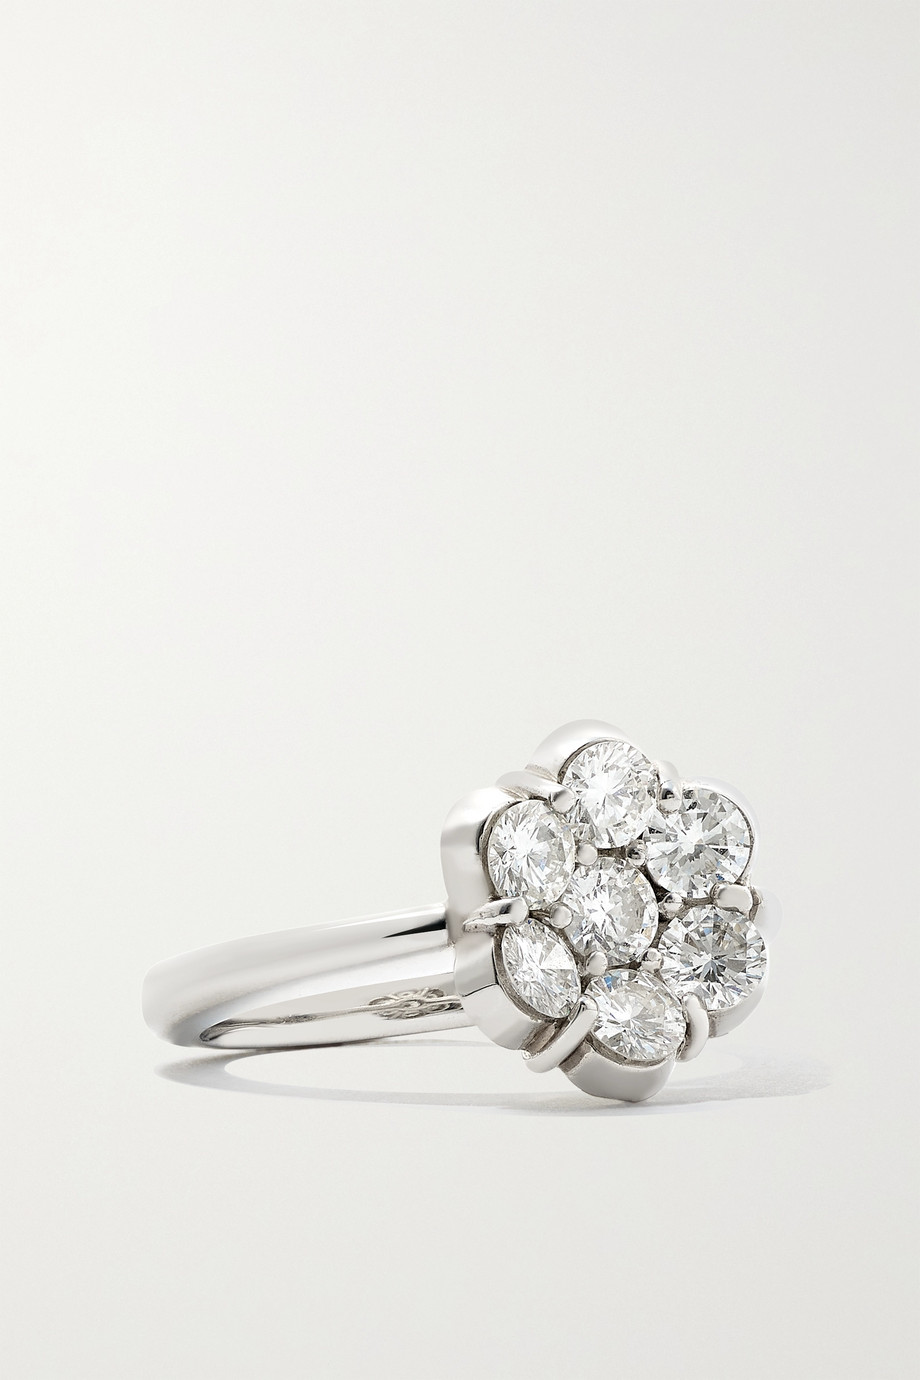 BAYCO Platinum diamond ring